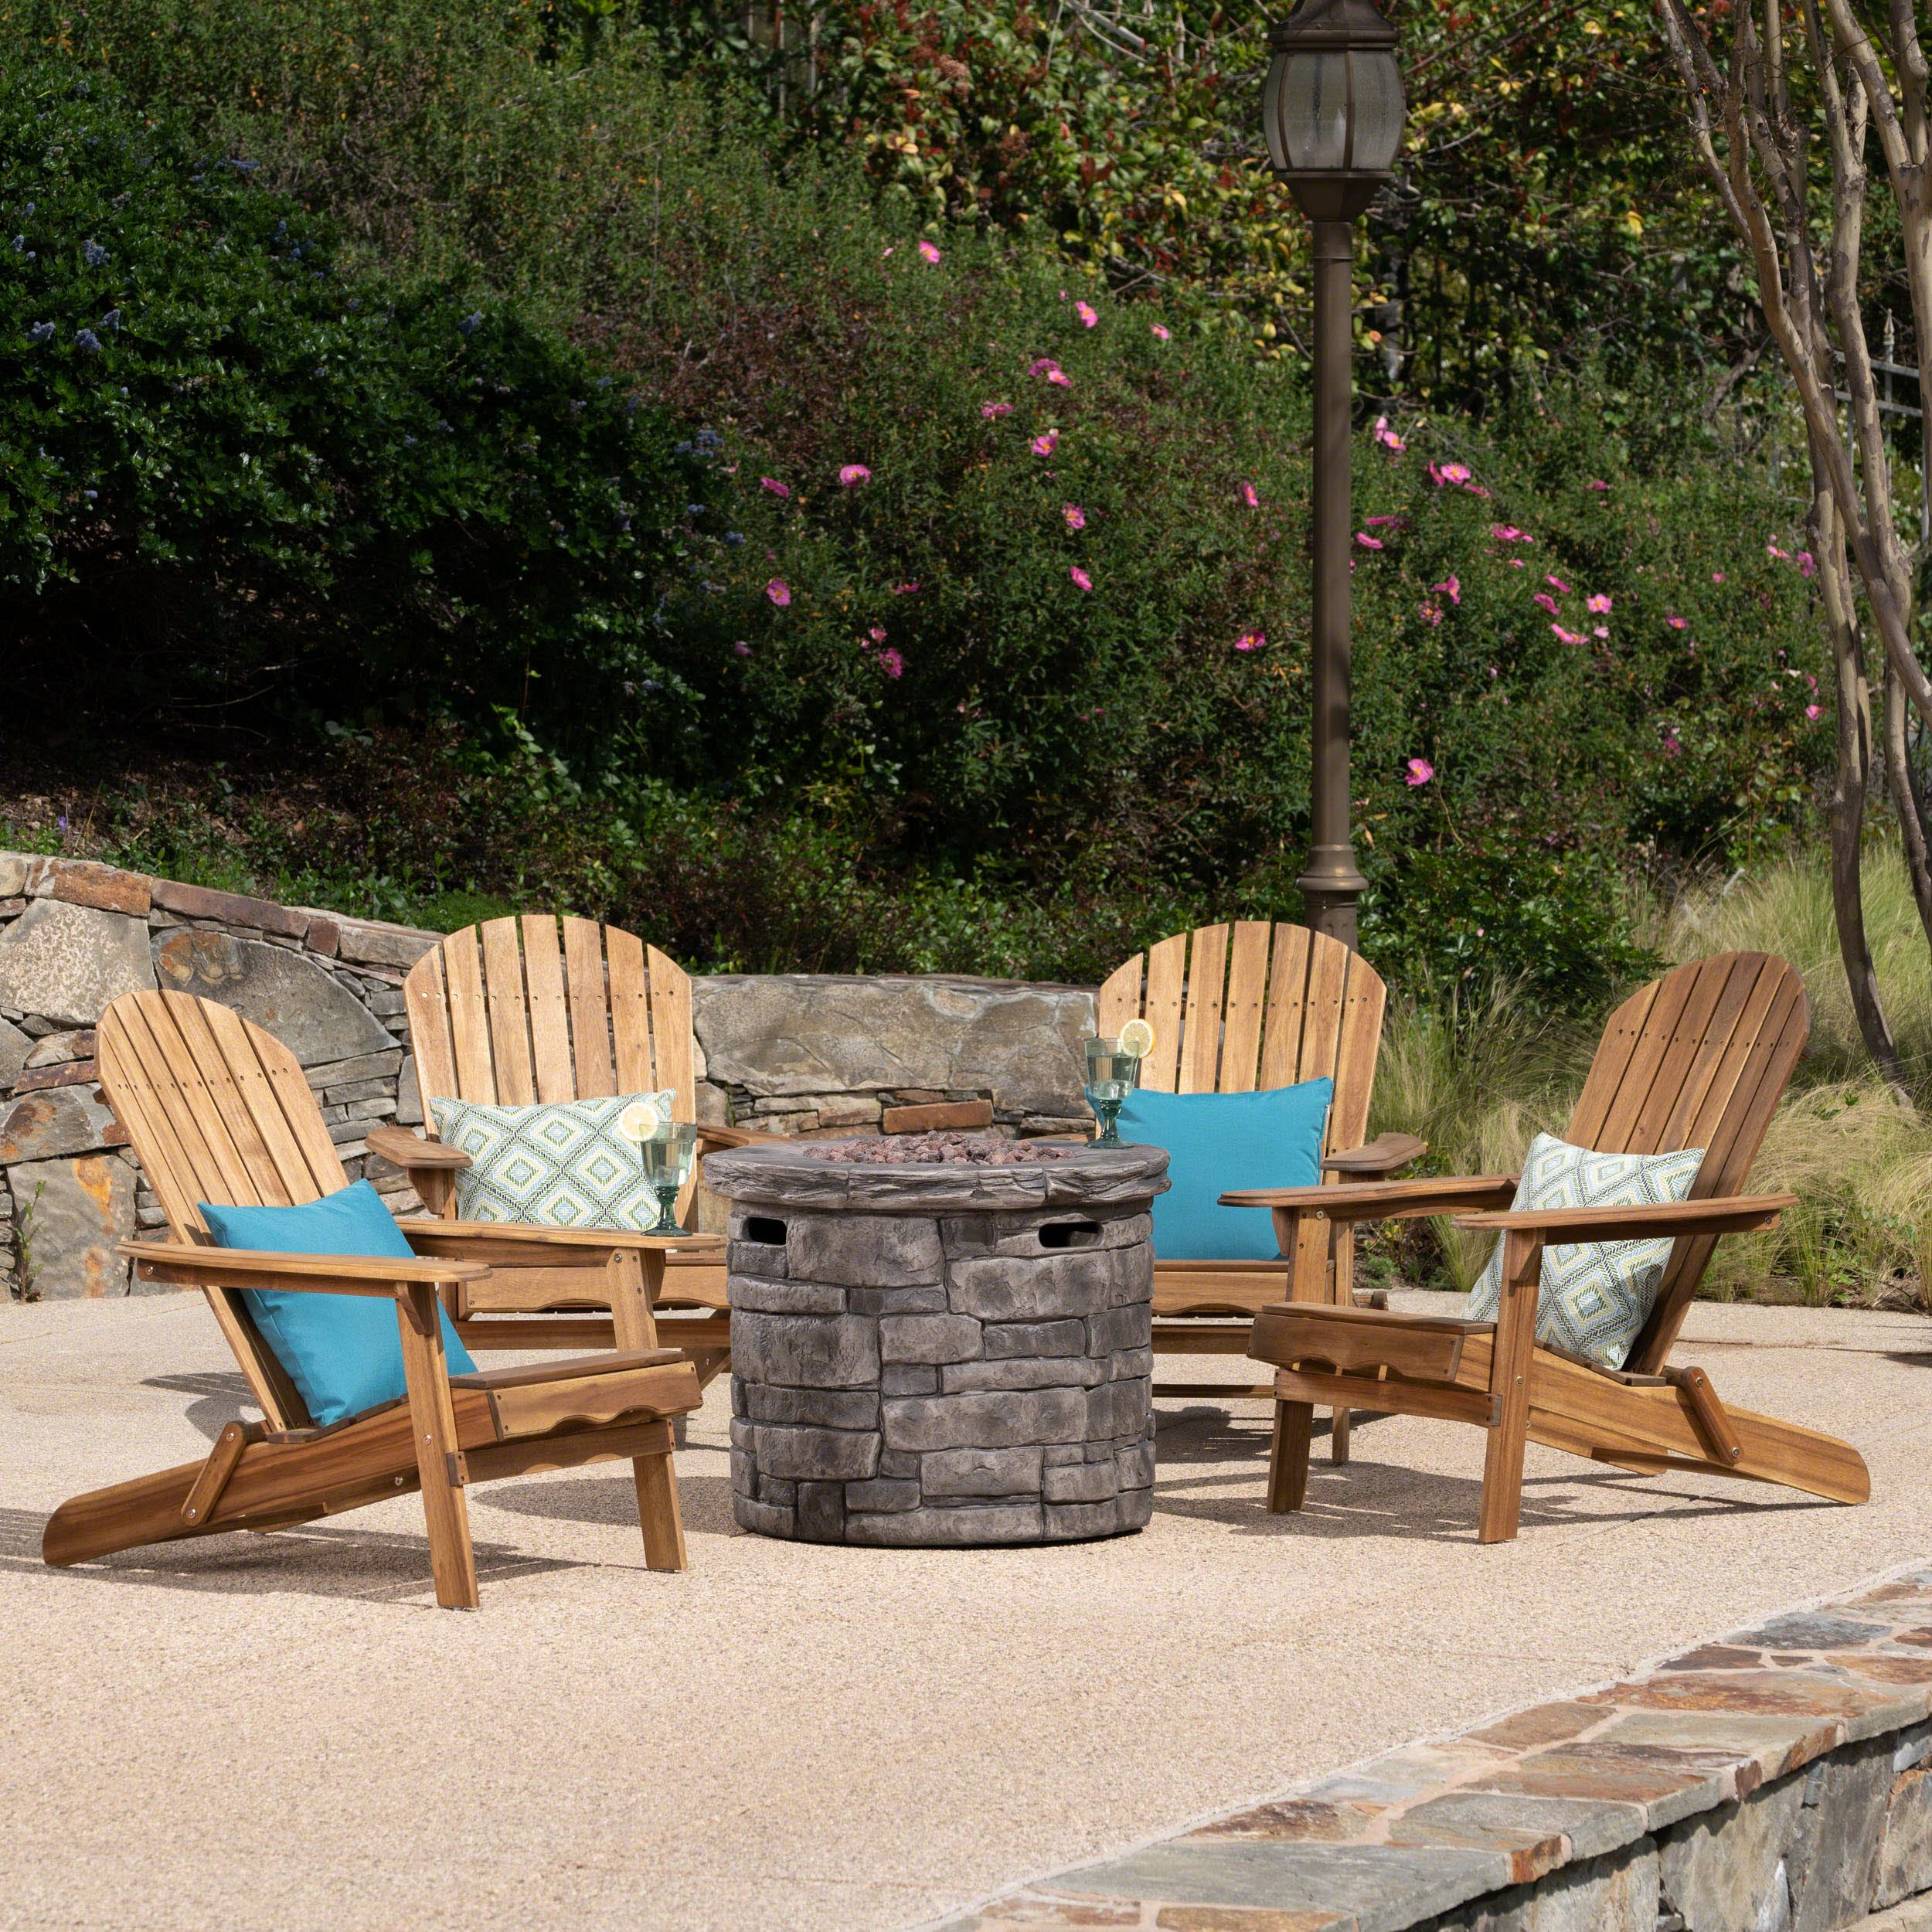 David Outdoor 5 Piece Acacia Wood/Light Weight Concrete Adirondack Chair Set with Fire Pit, Natural Finish and Grey Finish